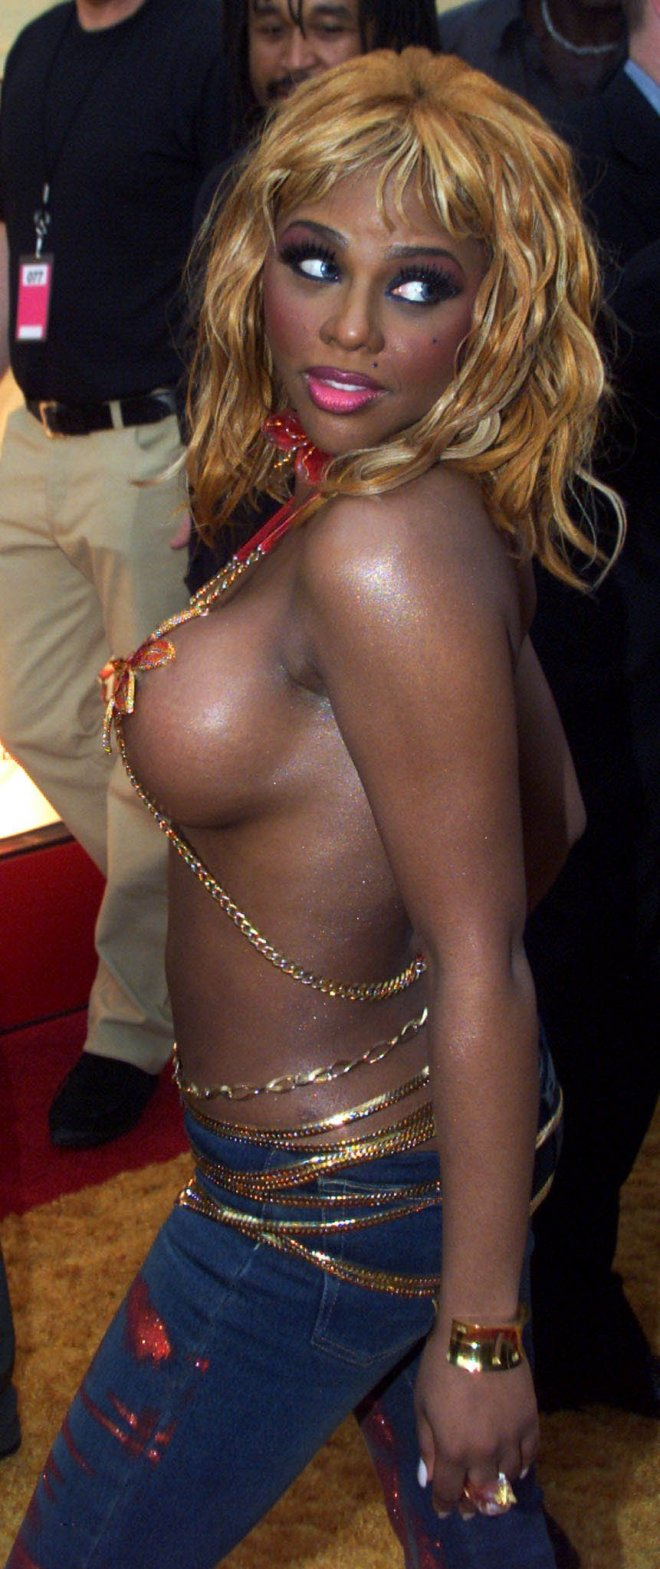 Singer Lil' Kim poses as she arrives at the 2001 MTV Movie Awards in Los Angeles June 2, 2001